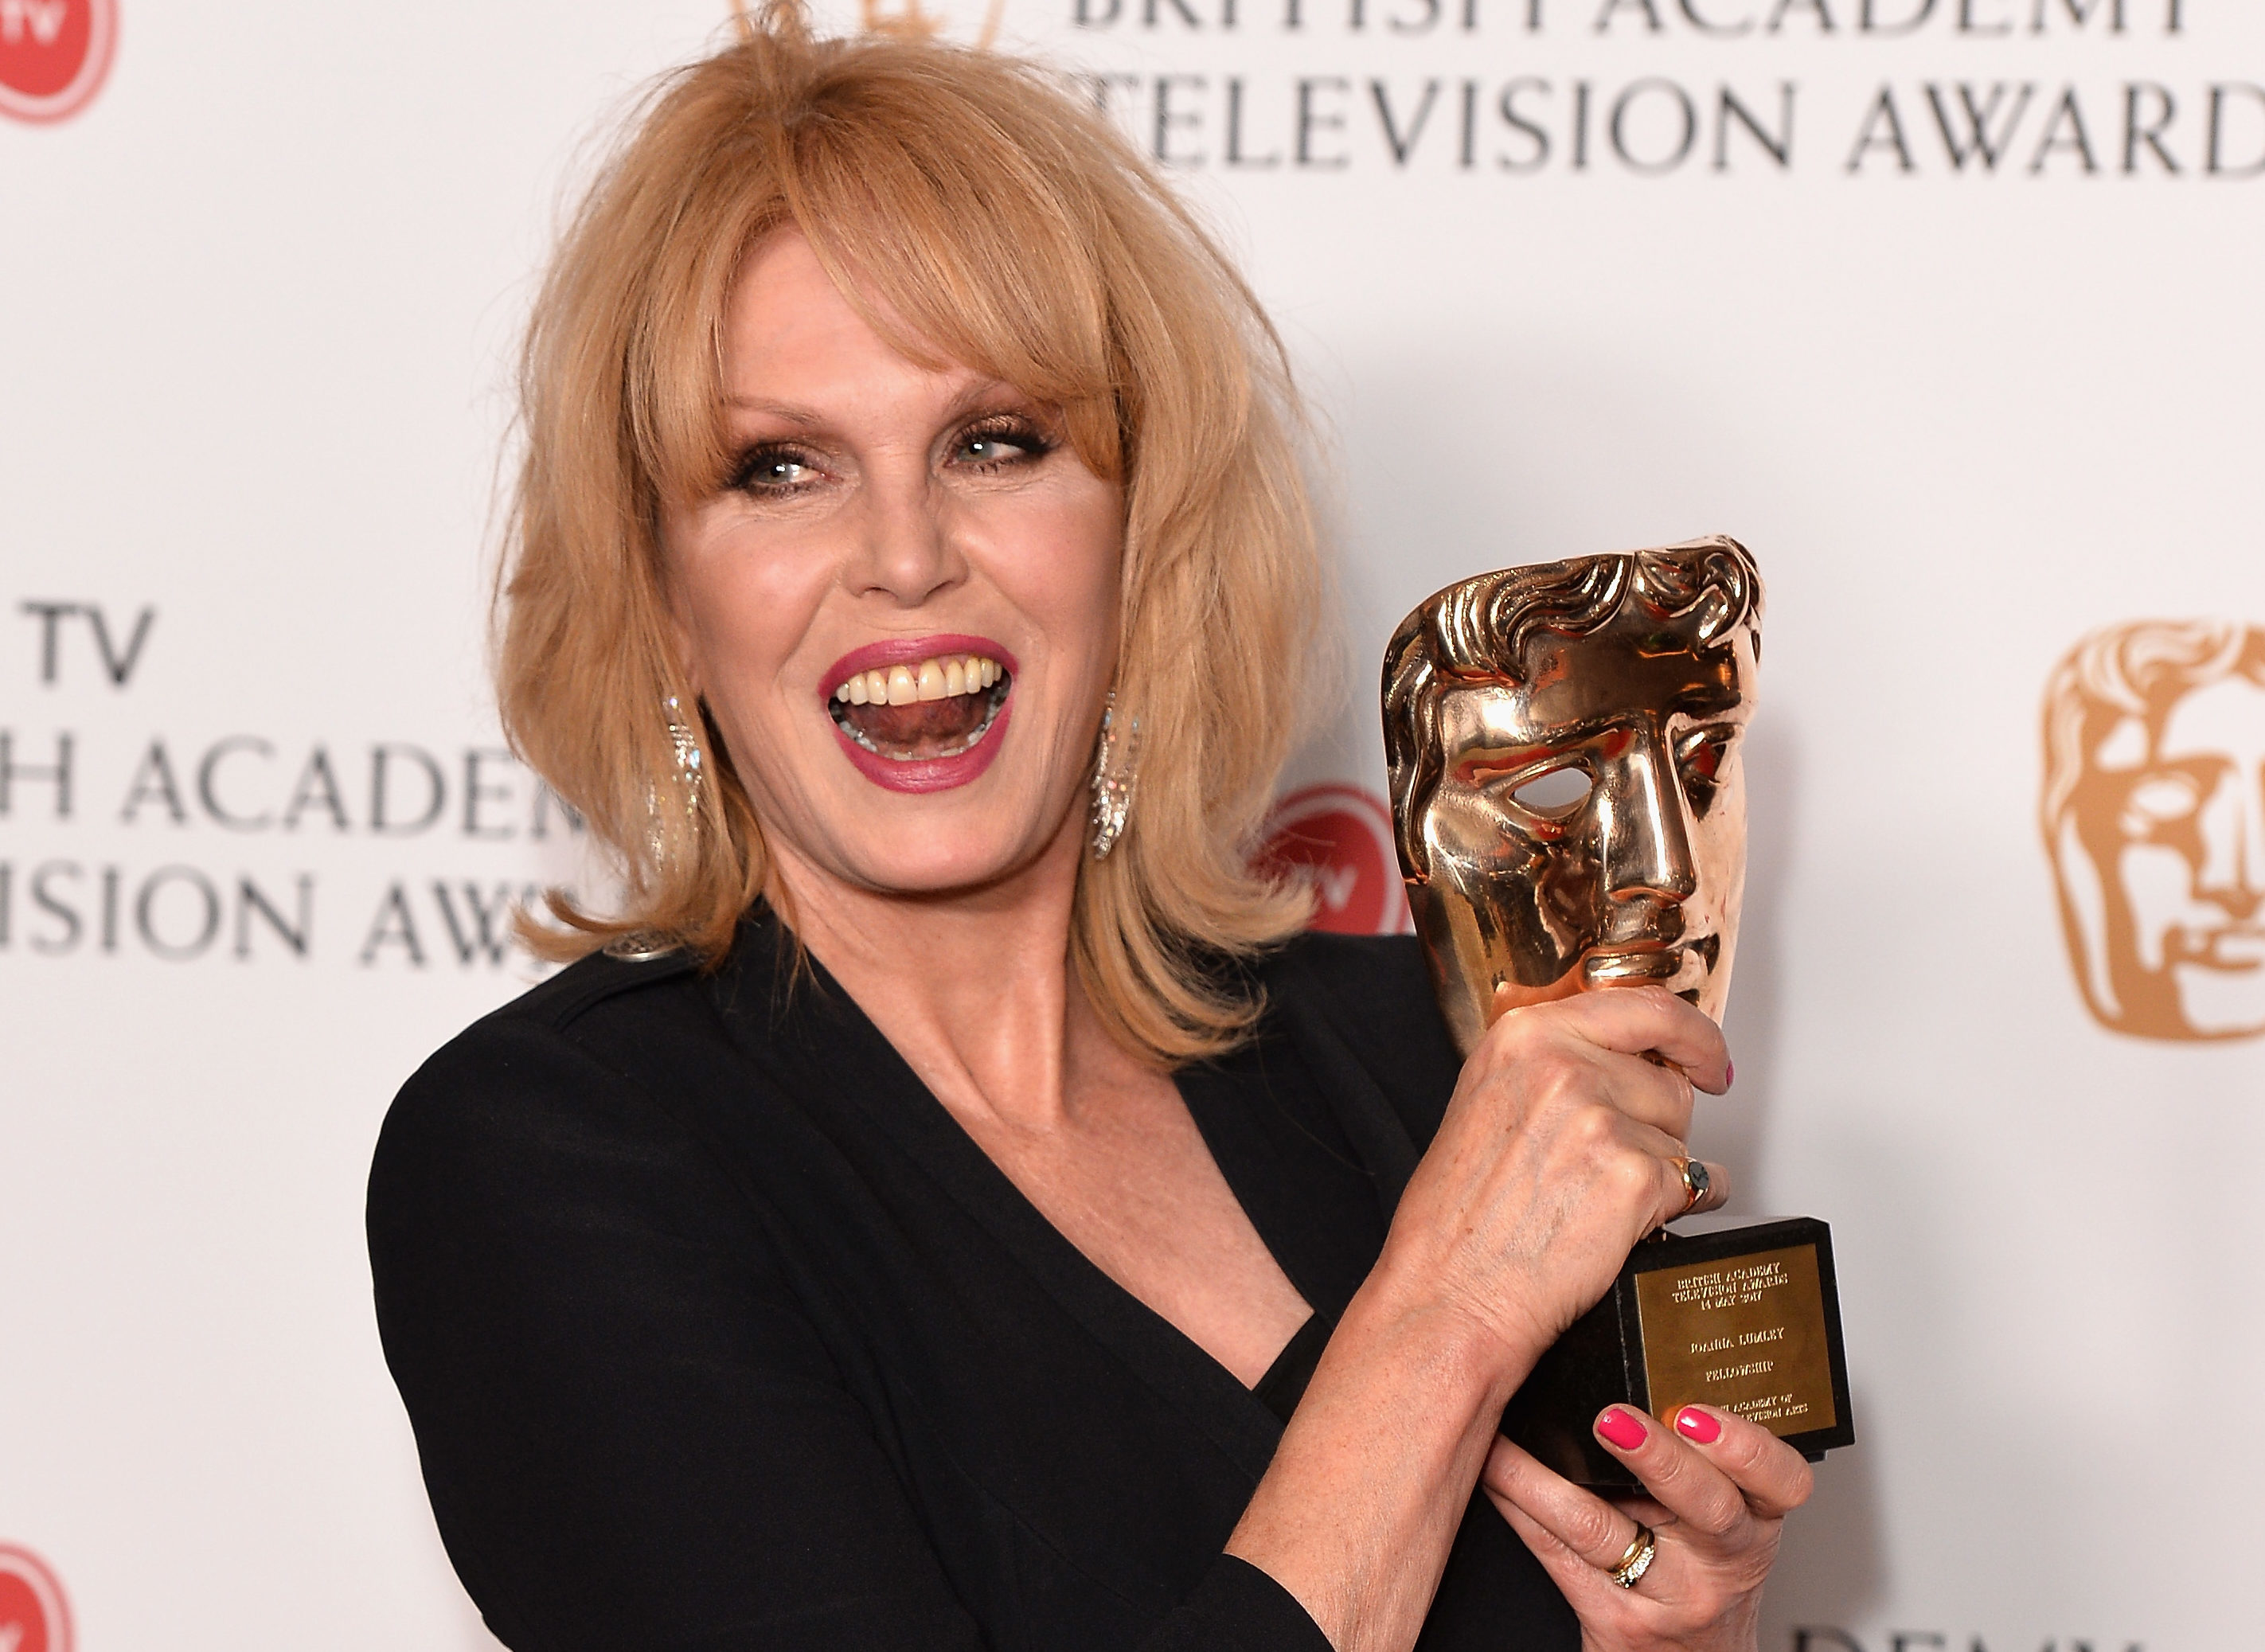 Joanna Lumley will host the ceremony (Jeff Spicer/Getty Images)